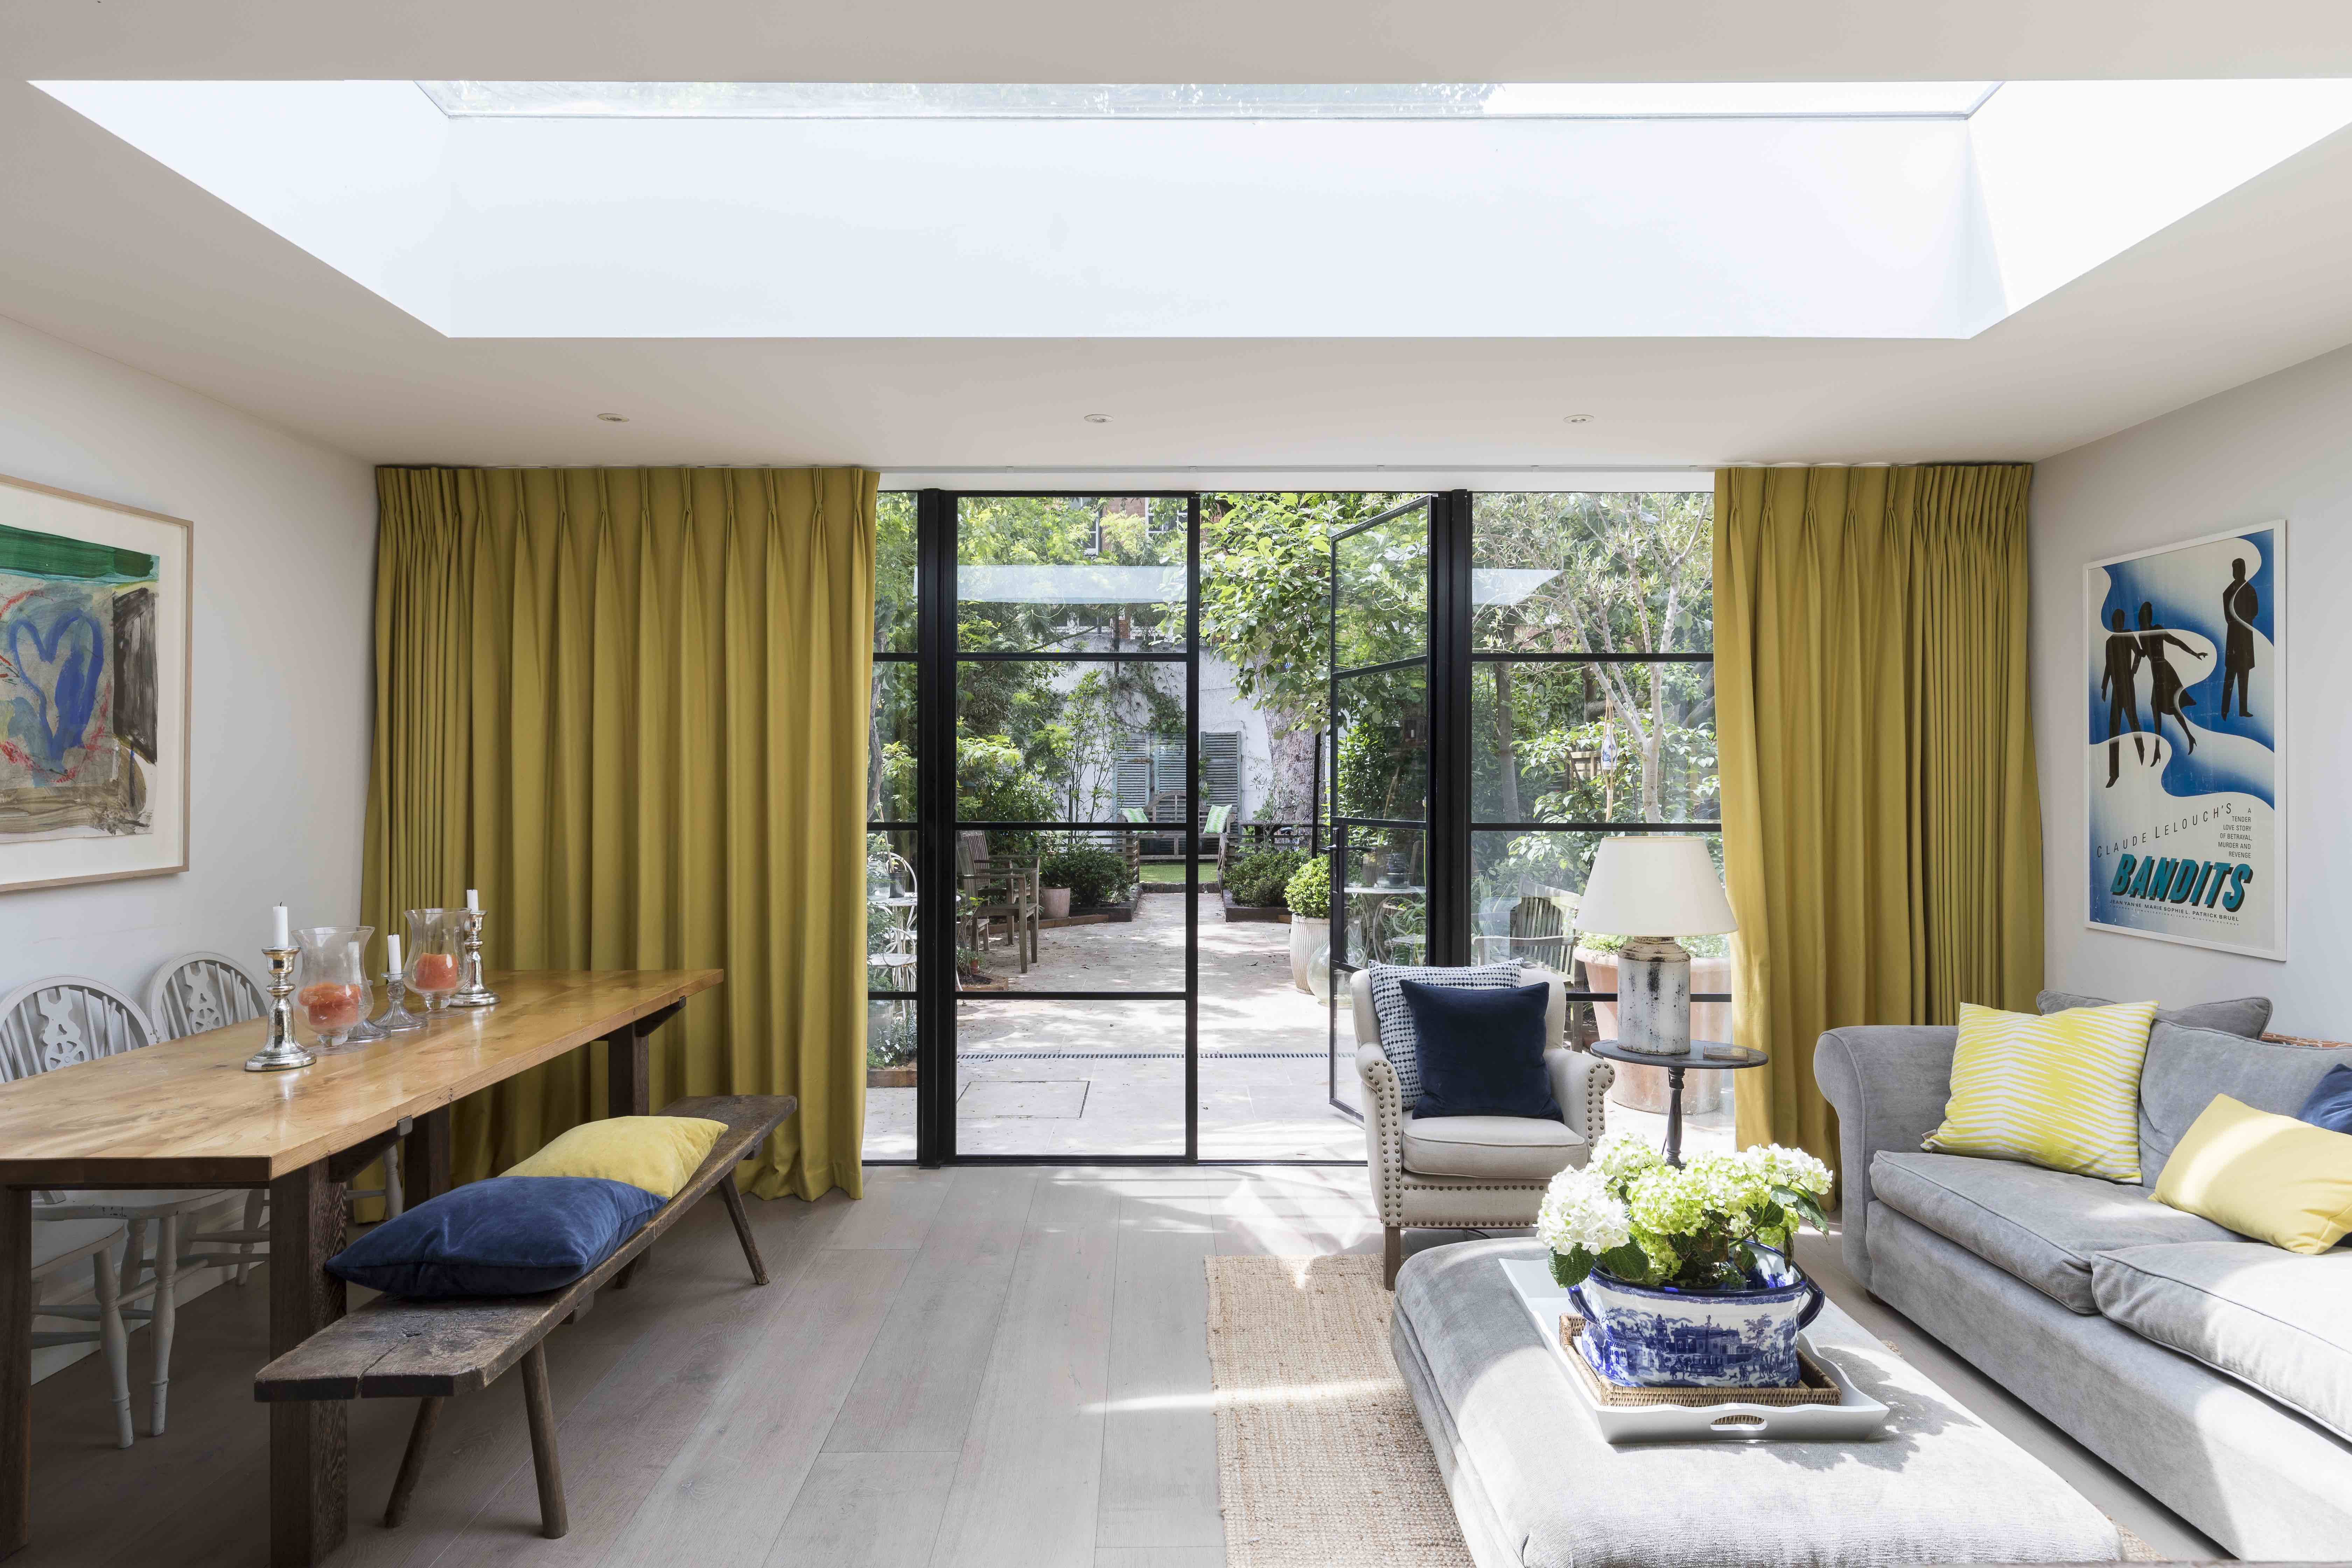 16 Practical And Pretty Door Treatments From Blinds And Curtains To Shutters And Window Film Real Homes